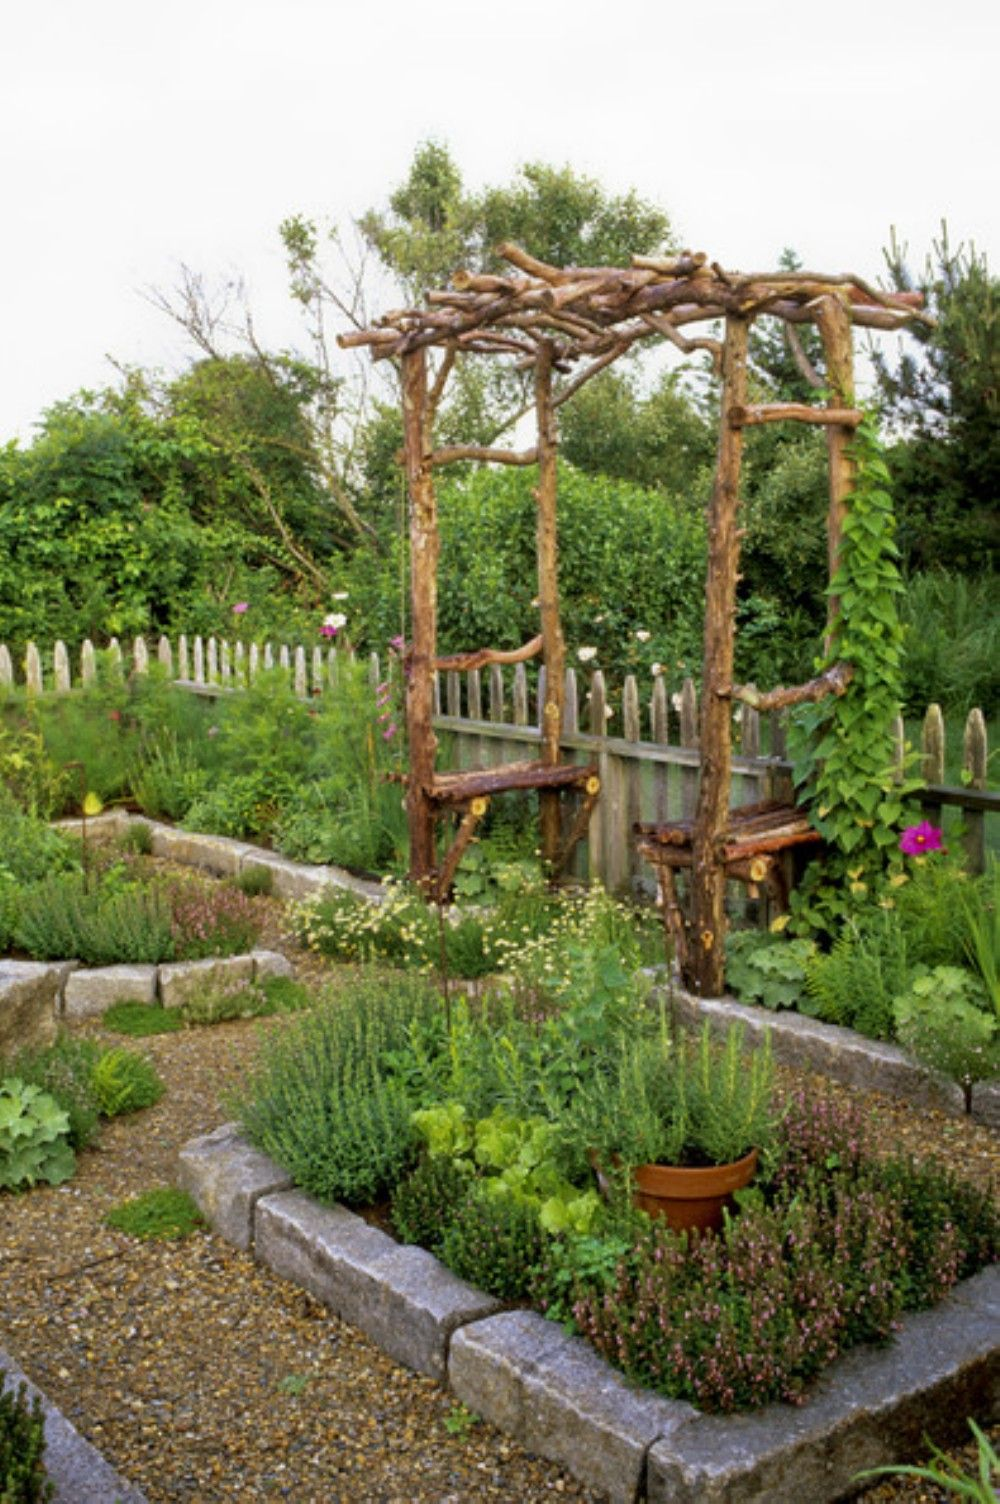 Country backyard garden ideas - Gorgeous 36 Modern English Country Garden For Your Backyard Https Cooarchitecture Com